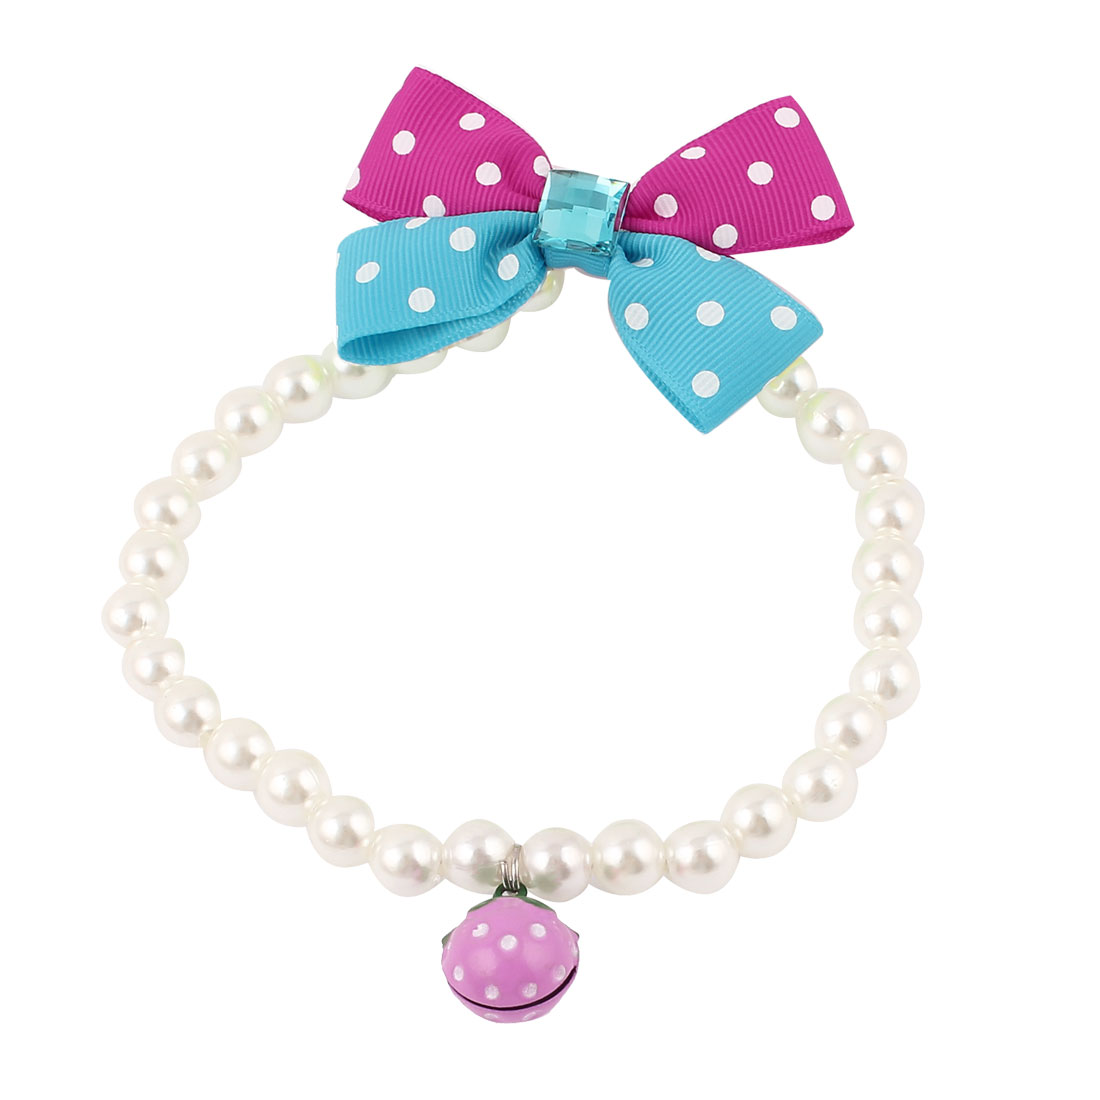 Metal Bell Pendant Bowtie Accent Pet Dog Plastic Beads Pearls Collar Necklace White M